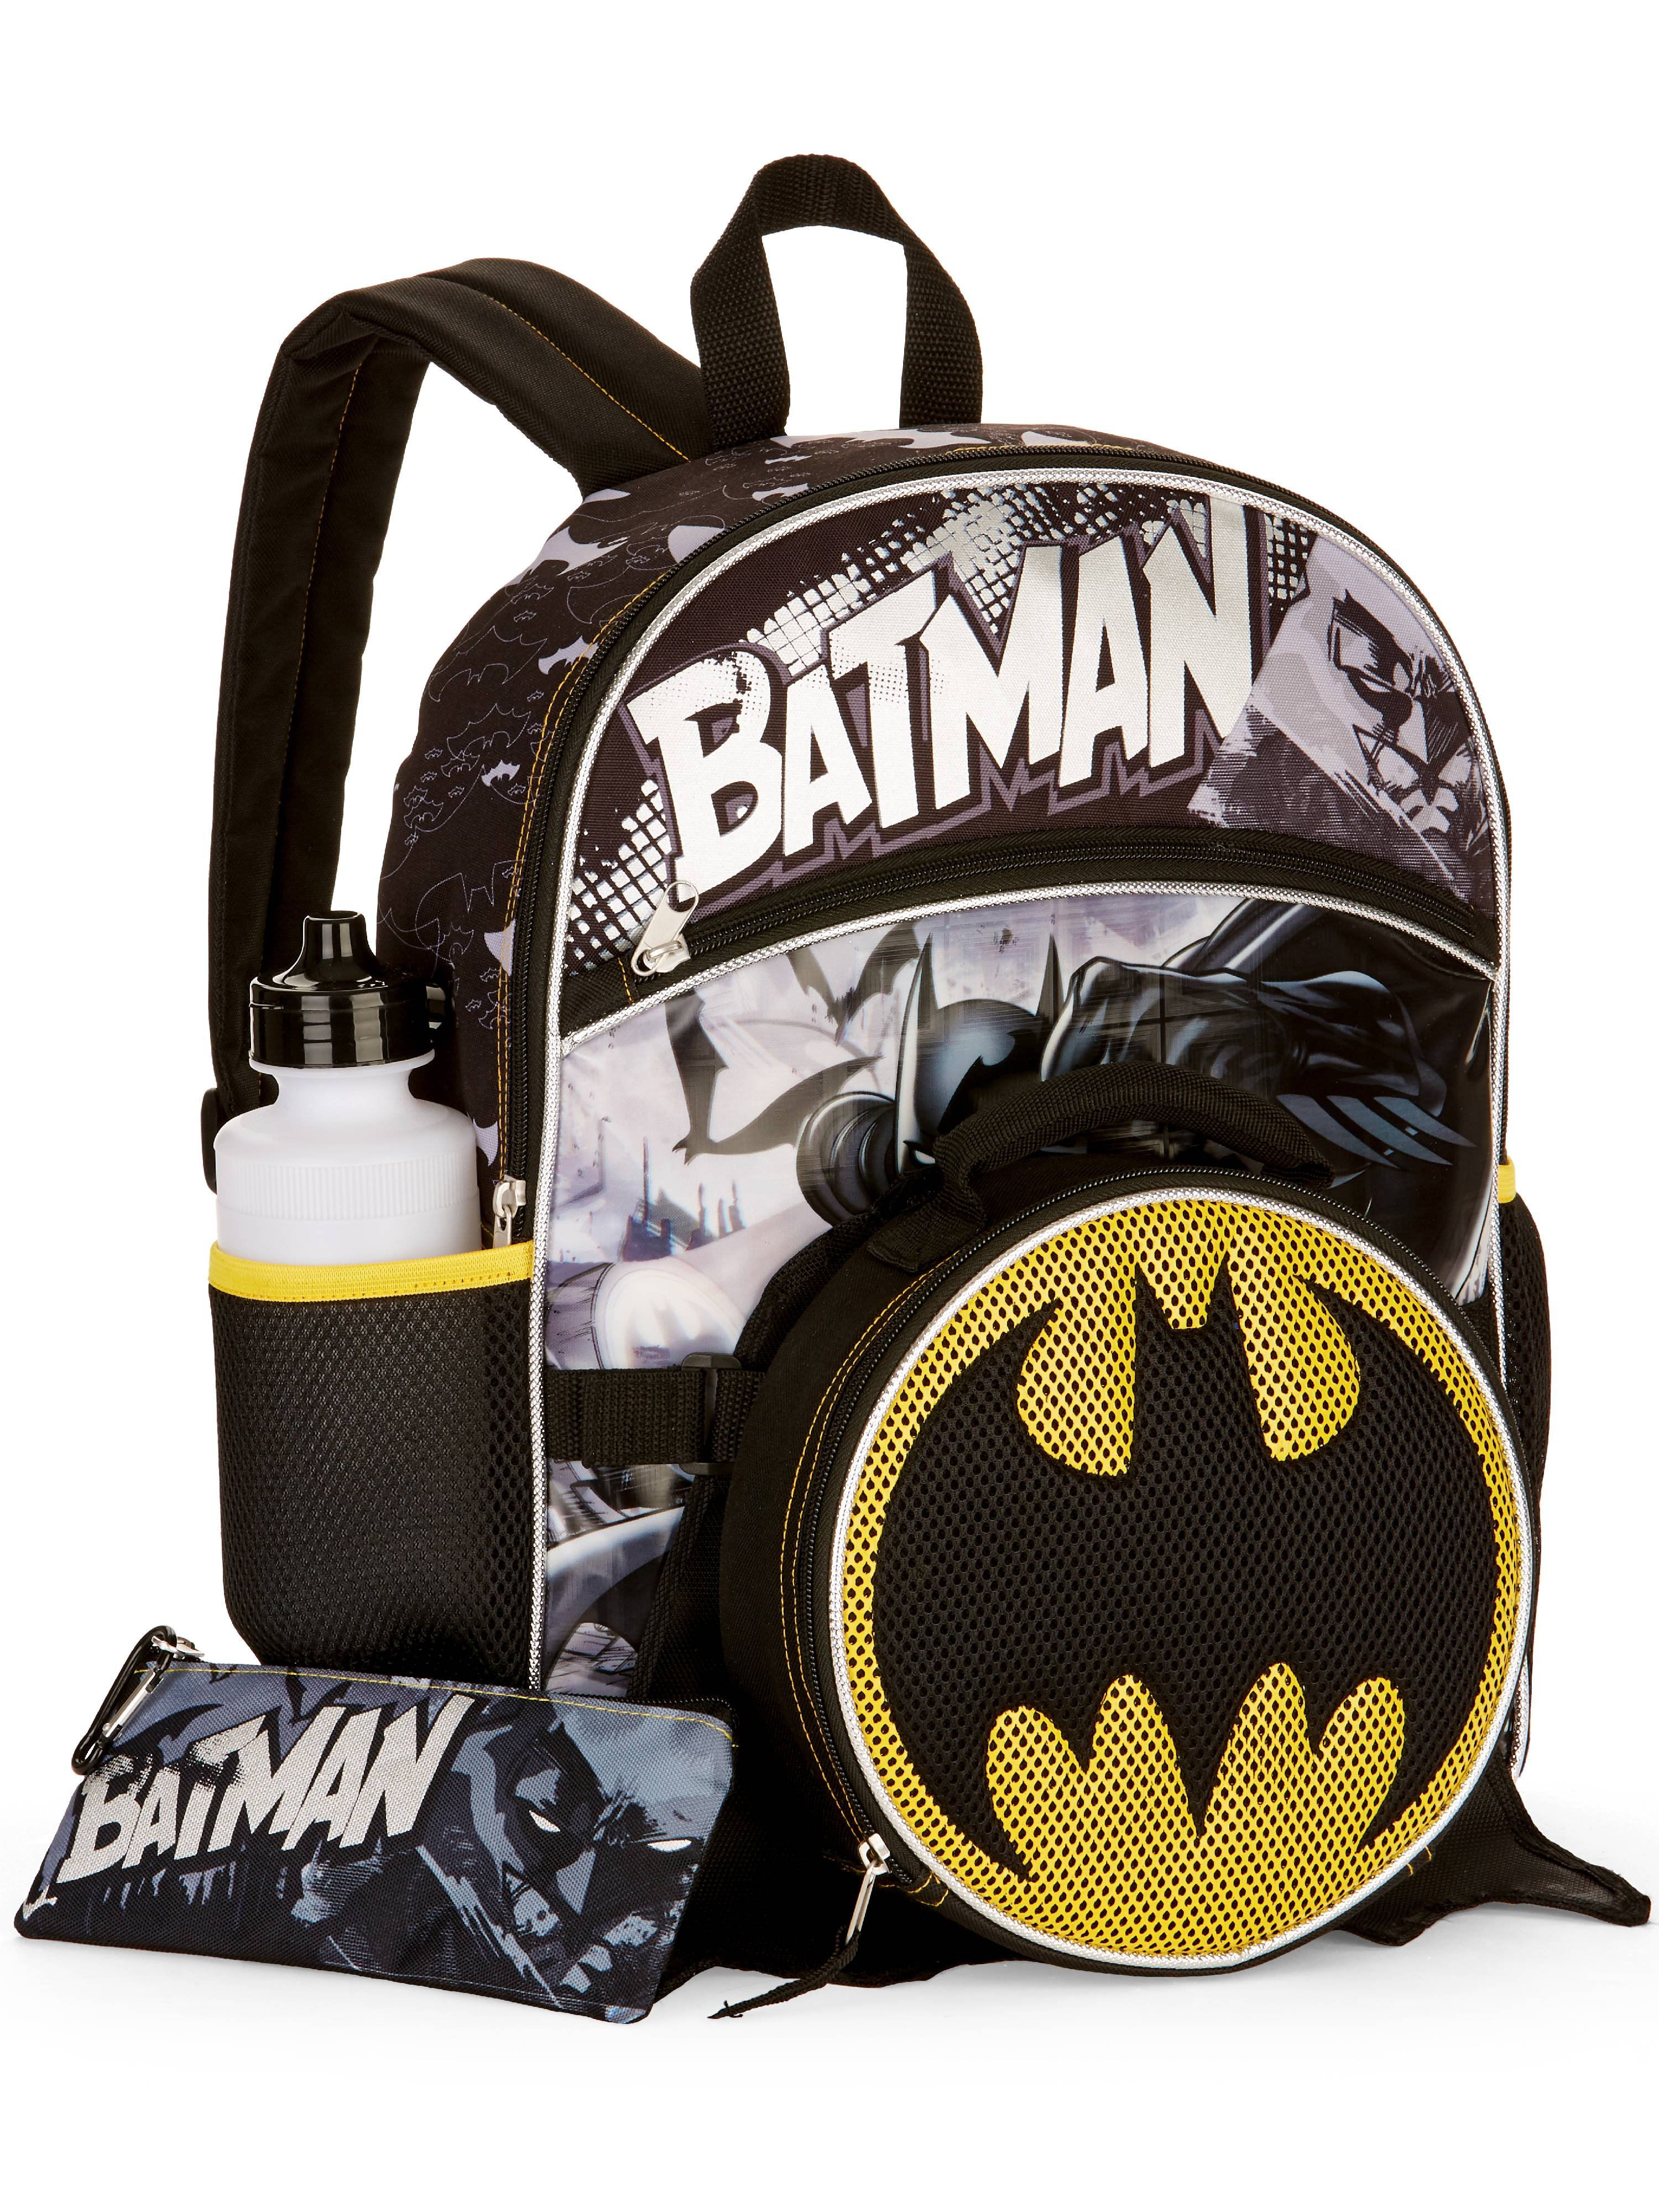 Batman 5-Piece Backpack Set With Lunch Bag by Generic